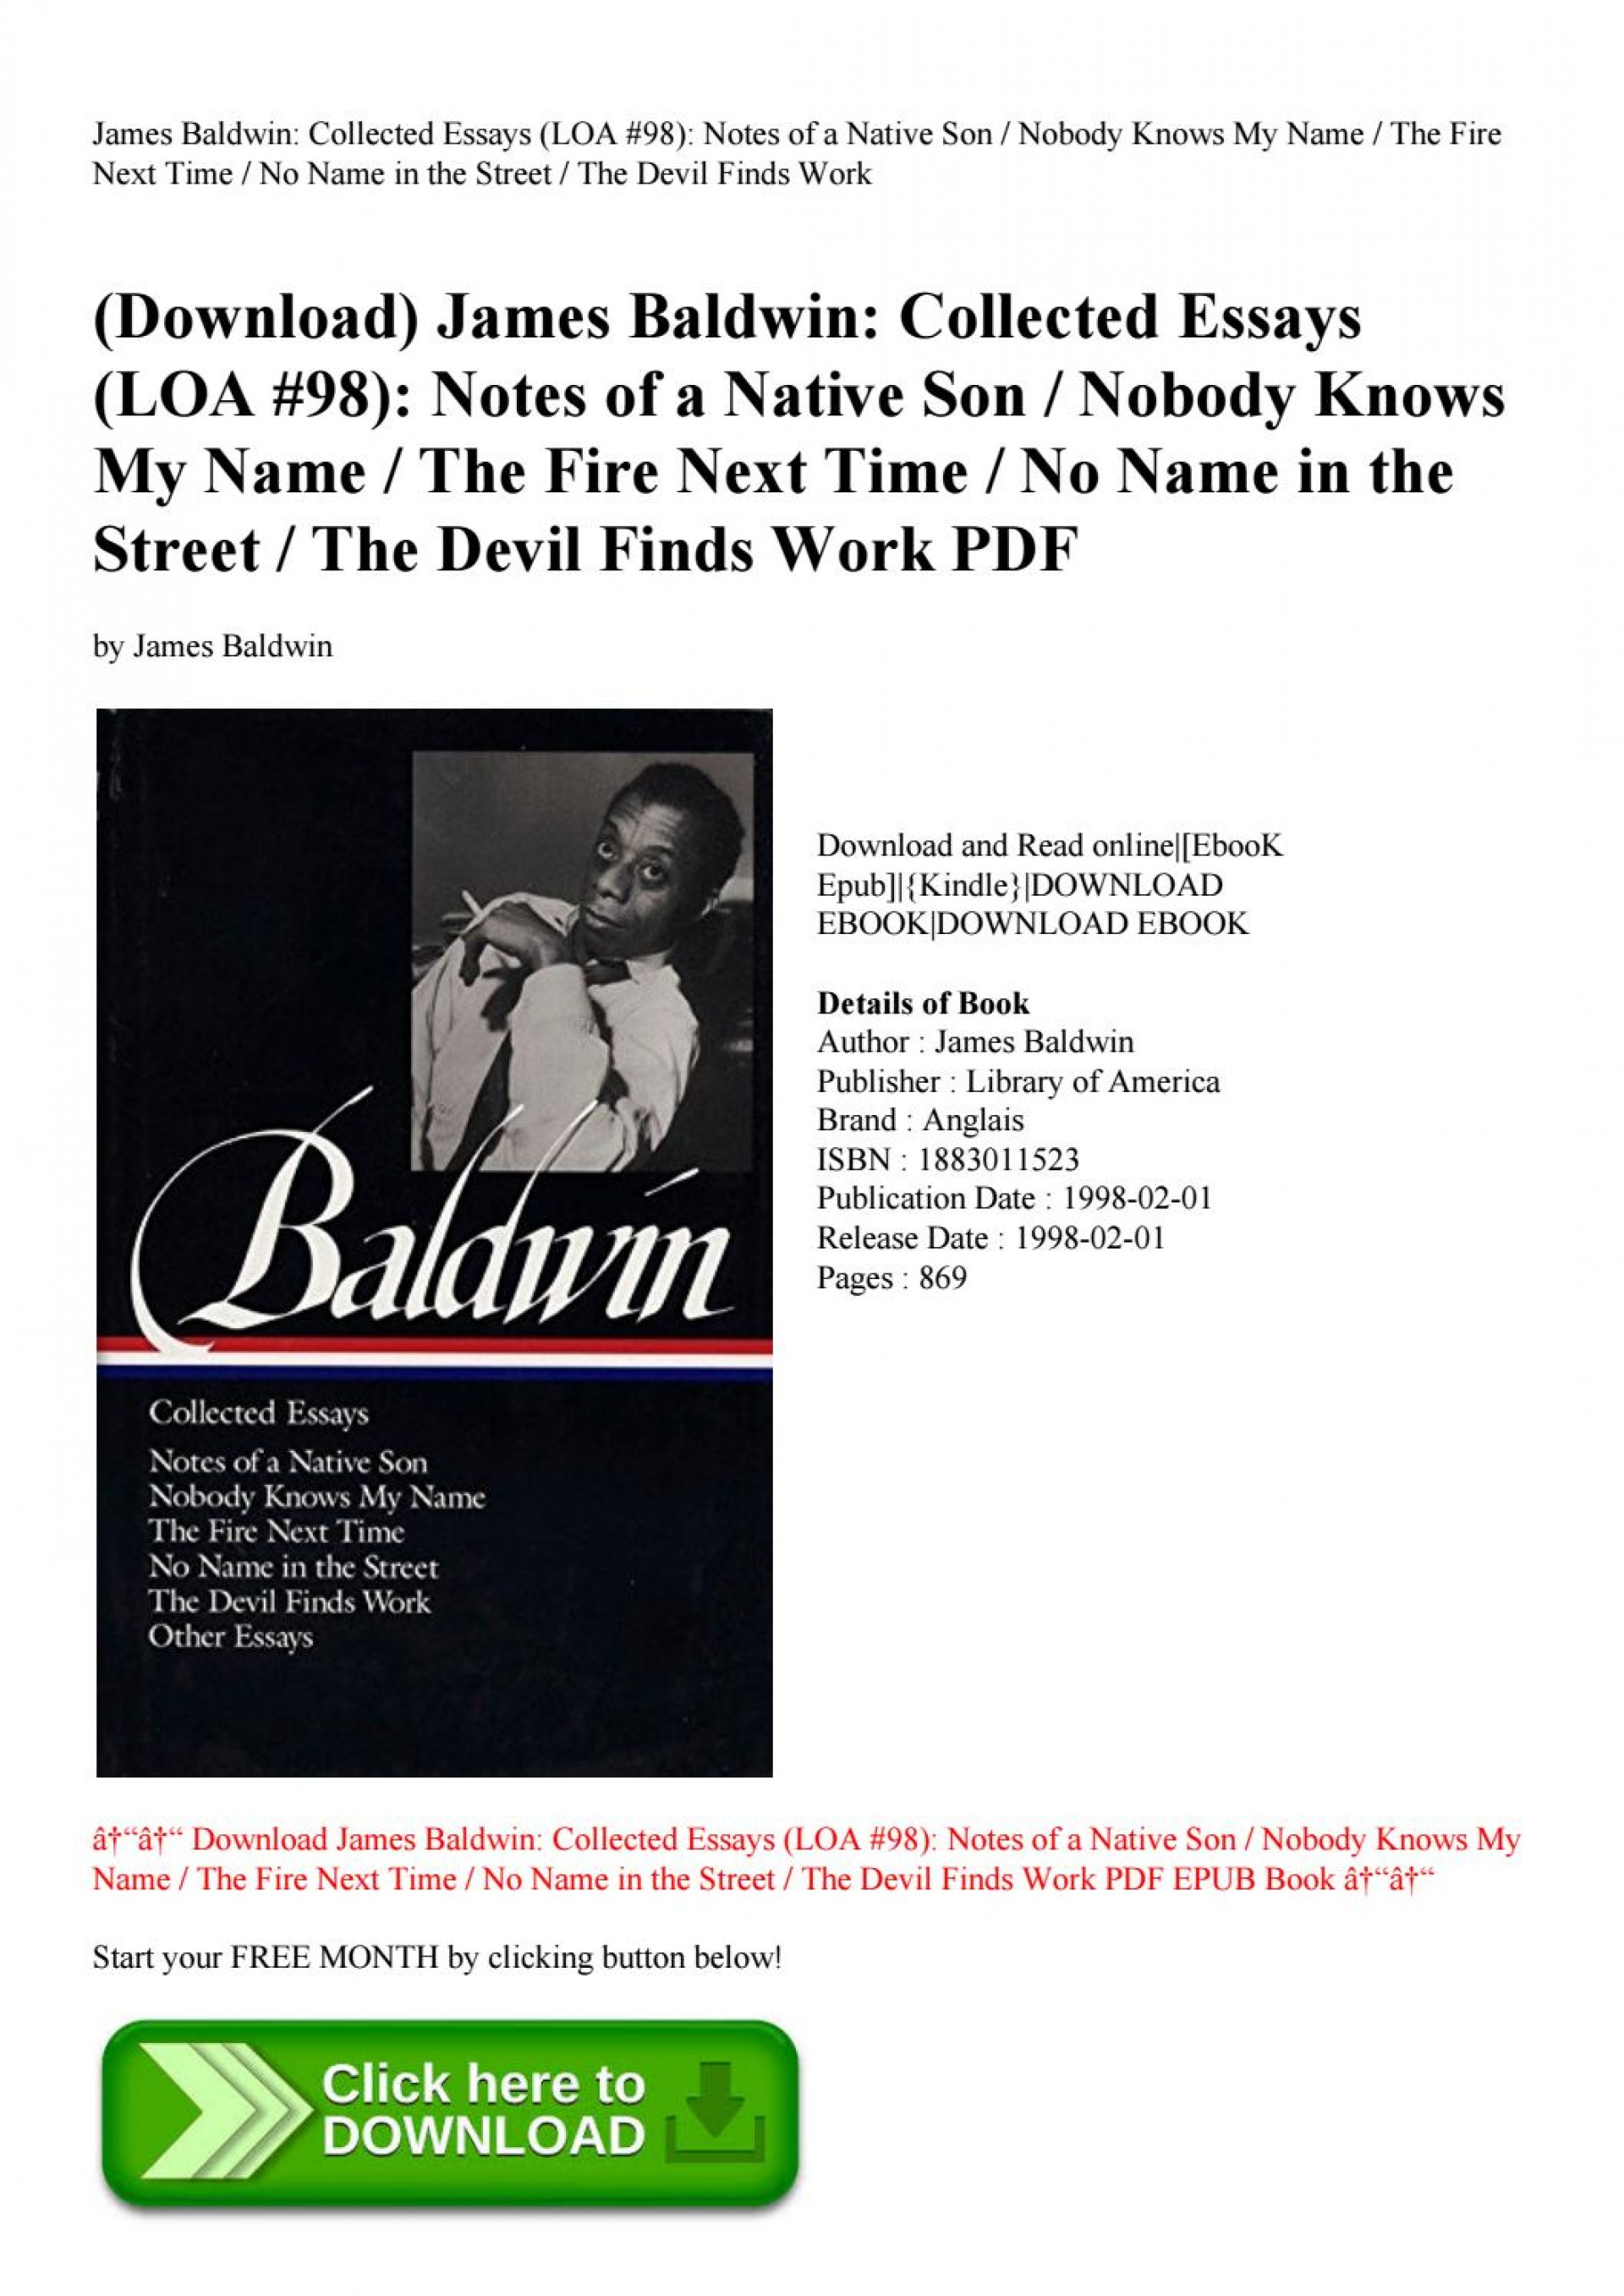 010 Page 1 Essay Example James Baldwin Collected Wondrous Essays Table Of Contents Ebook Google Books 1920